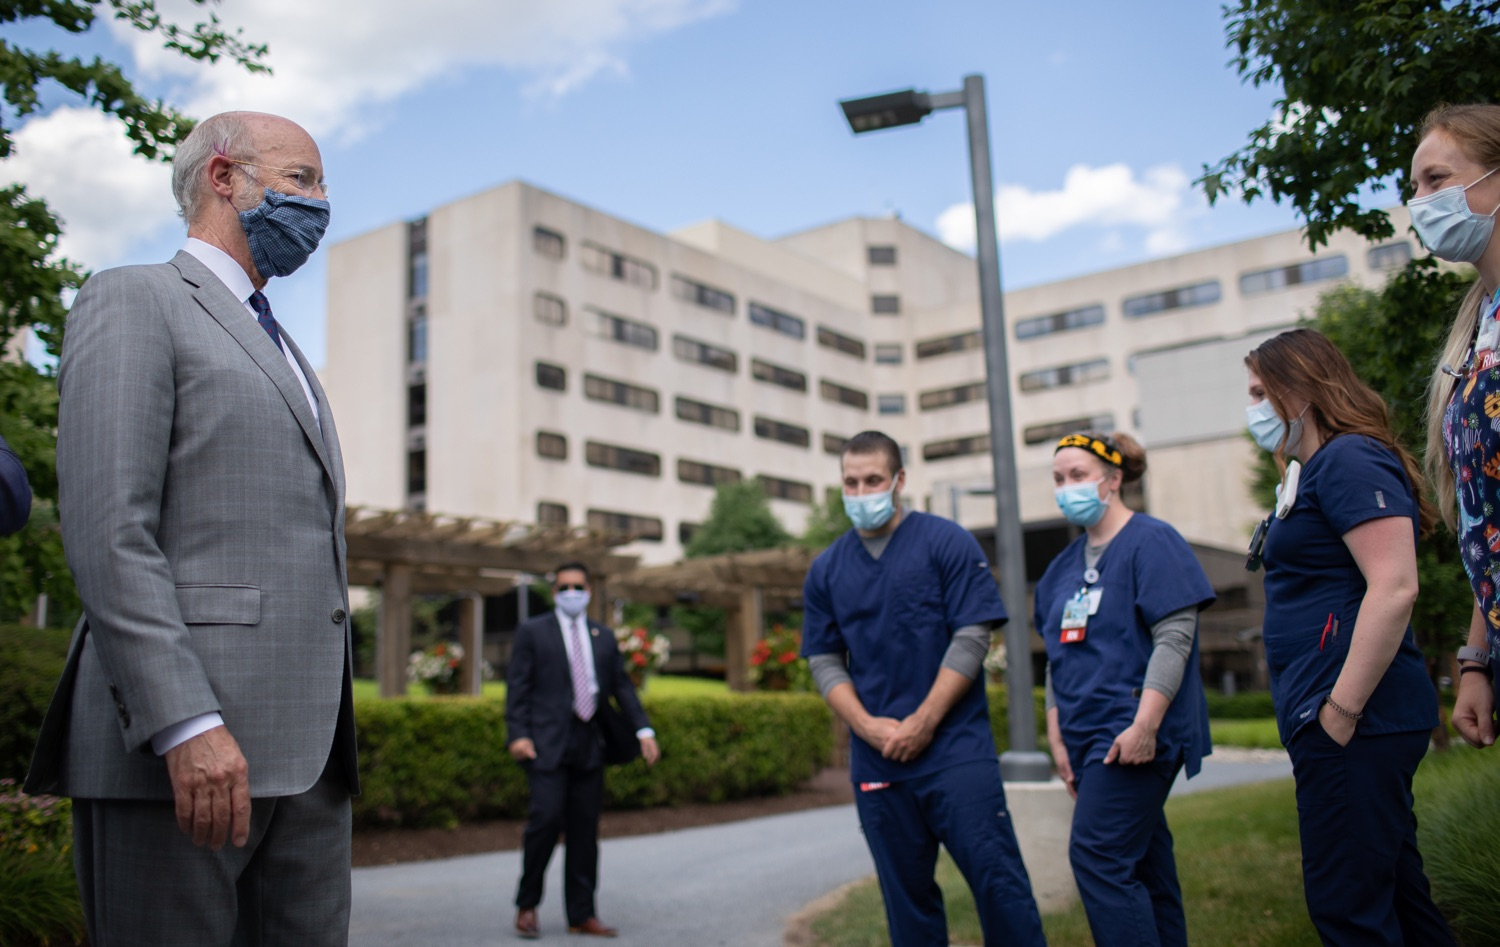 "<a href=""https://filesource.wostreaming.net/commonwealthofpa/photo/18093_gov-healthcare_workers_dz_09.jpg"" target=""_blank"">⇣ Download Photo<br></a>Pennsylvania Governor Tom Wolf visits with medical workers during his visit to Milton S. Hershey Medical Center. As the commonwealth continues its measured, phased reopening and COVID-19 case counts continue to decline, Governor Tom Wolf visited Penn State Milton S. Hershey Medical Center today to thank staff and learn more about how the facility is handling the pandemic and preparing for a possible resurgence in the fall.  Harrisburg, PA  June 24, 2020"